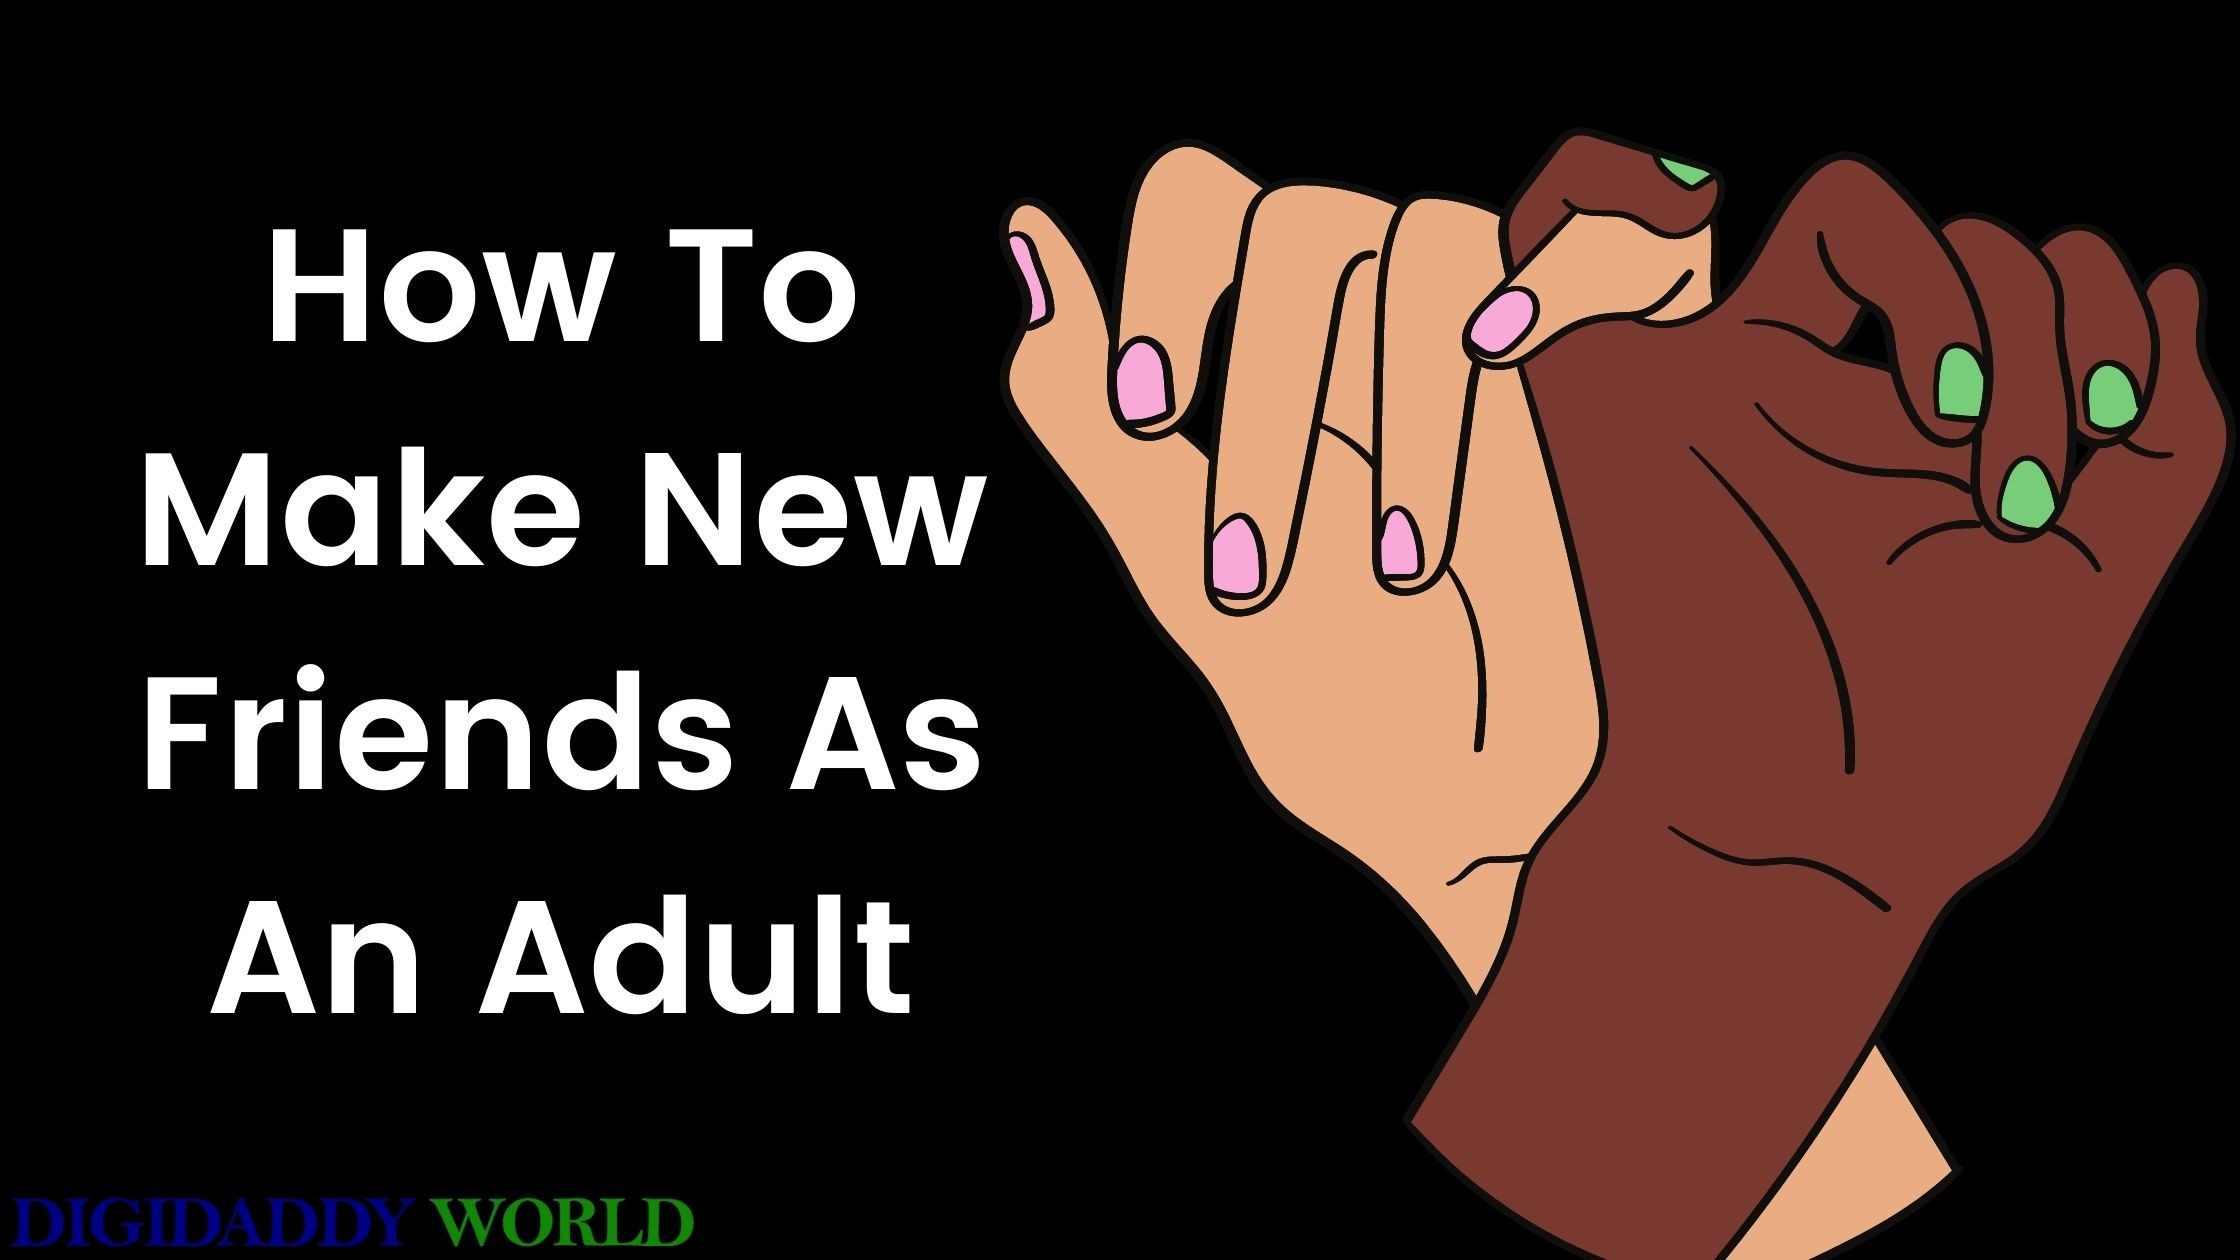 How To Make New Friends As An Adult